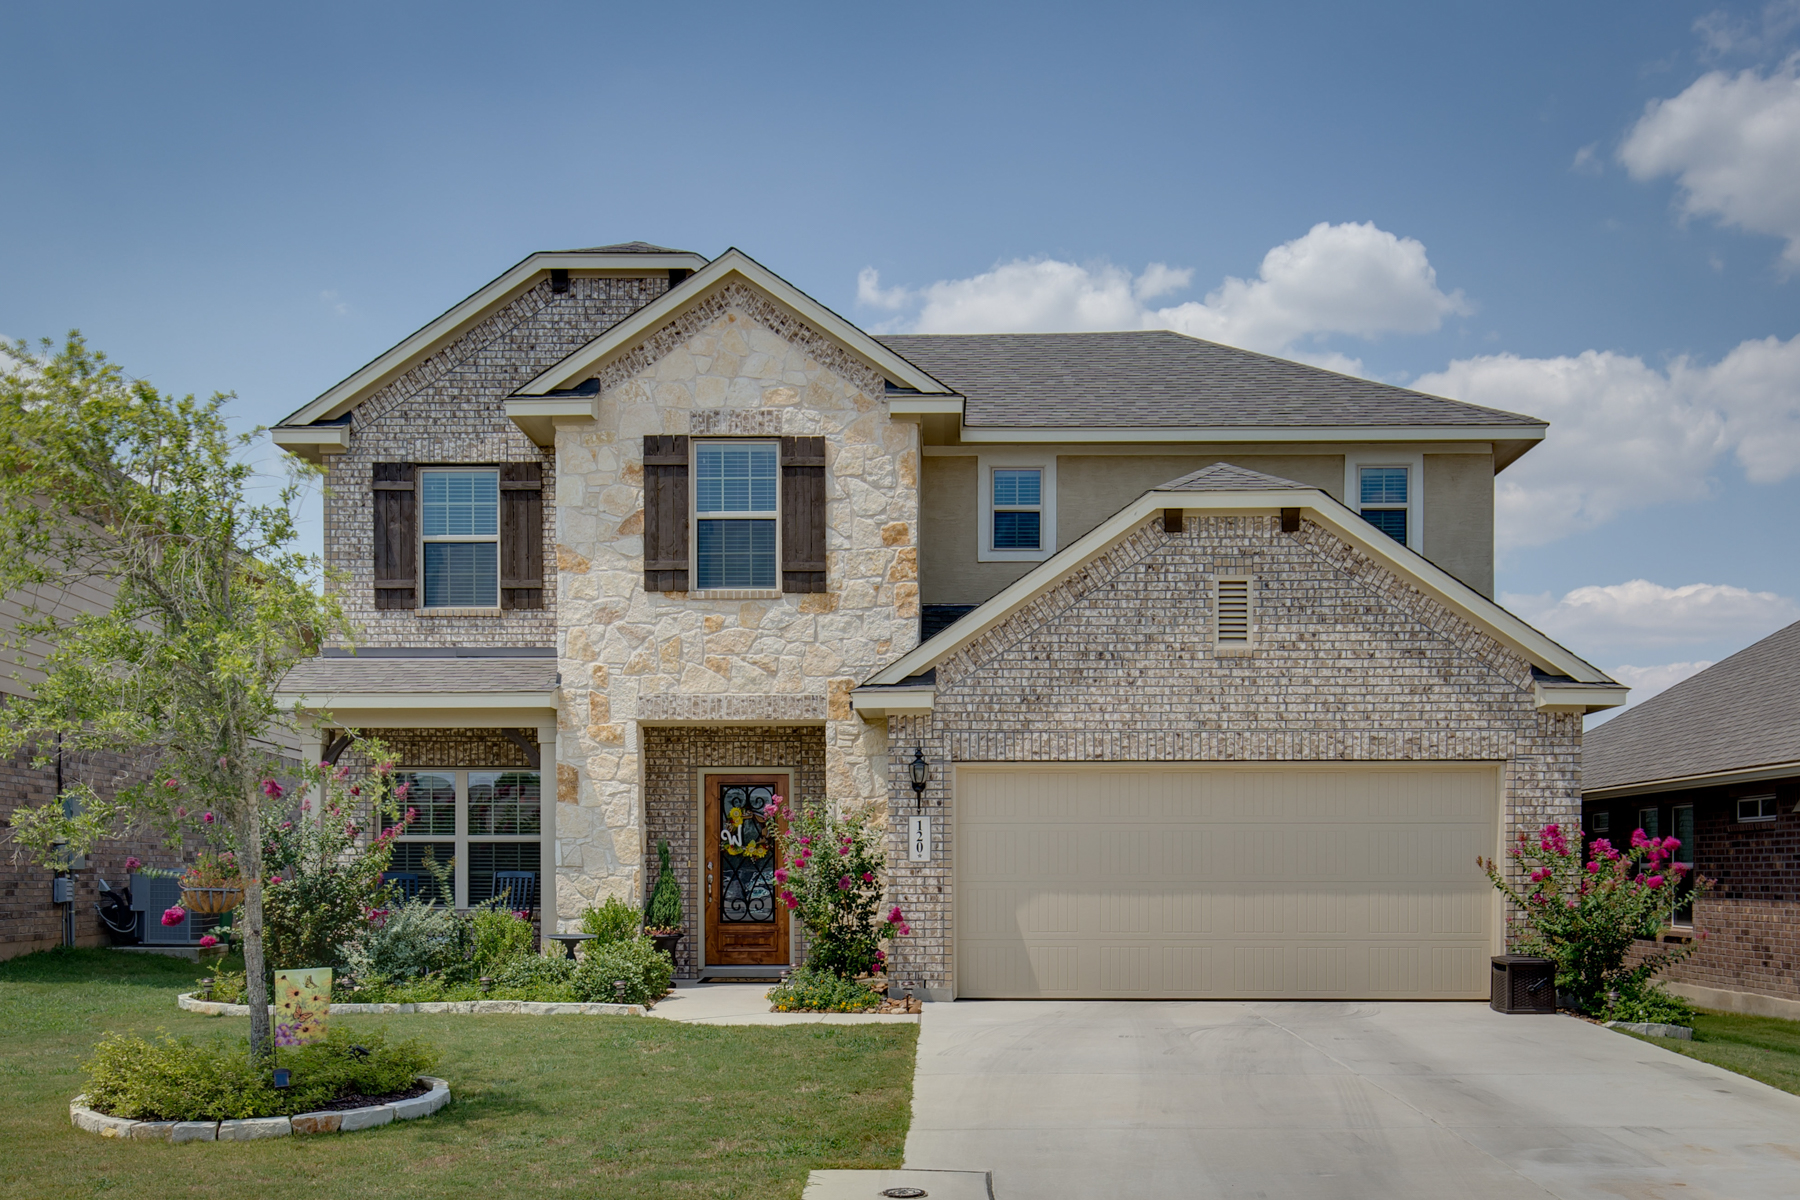 Single Family Home for Sale at Great Home in Boerne 120 Kasper Dr Boerne, Texas 78006 United States